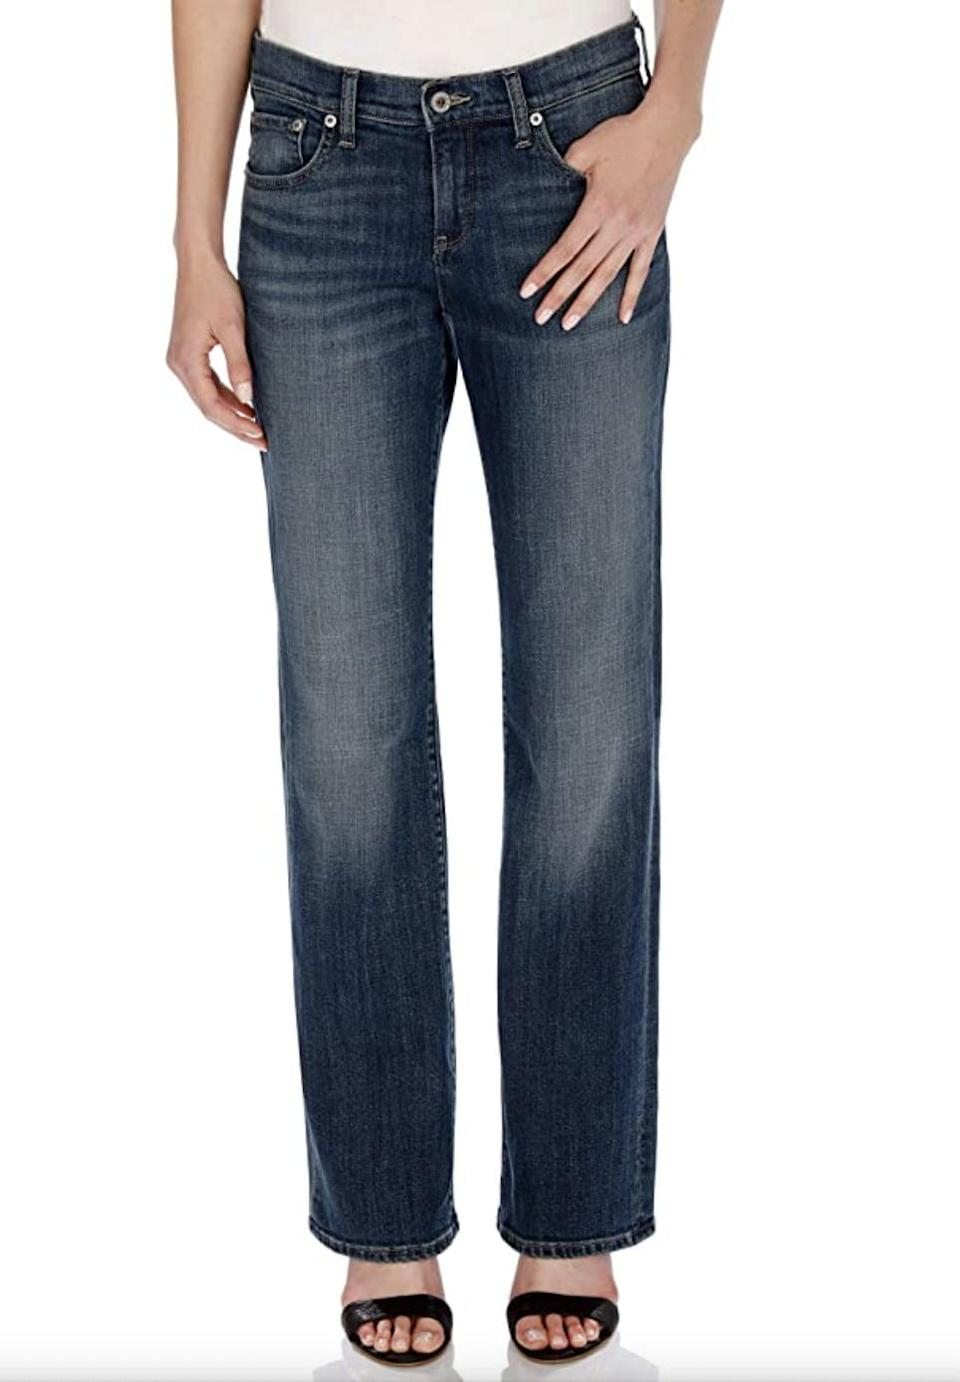 <p>If you're into a more relaxed fit, consider these <span>Lucky Brand Mid Rise Easy Rider Bootcut Jeans</span> ($53 - $107).</p>